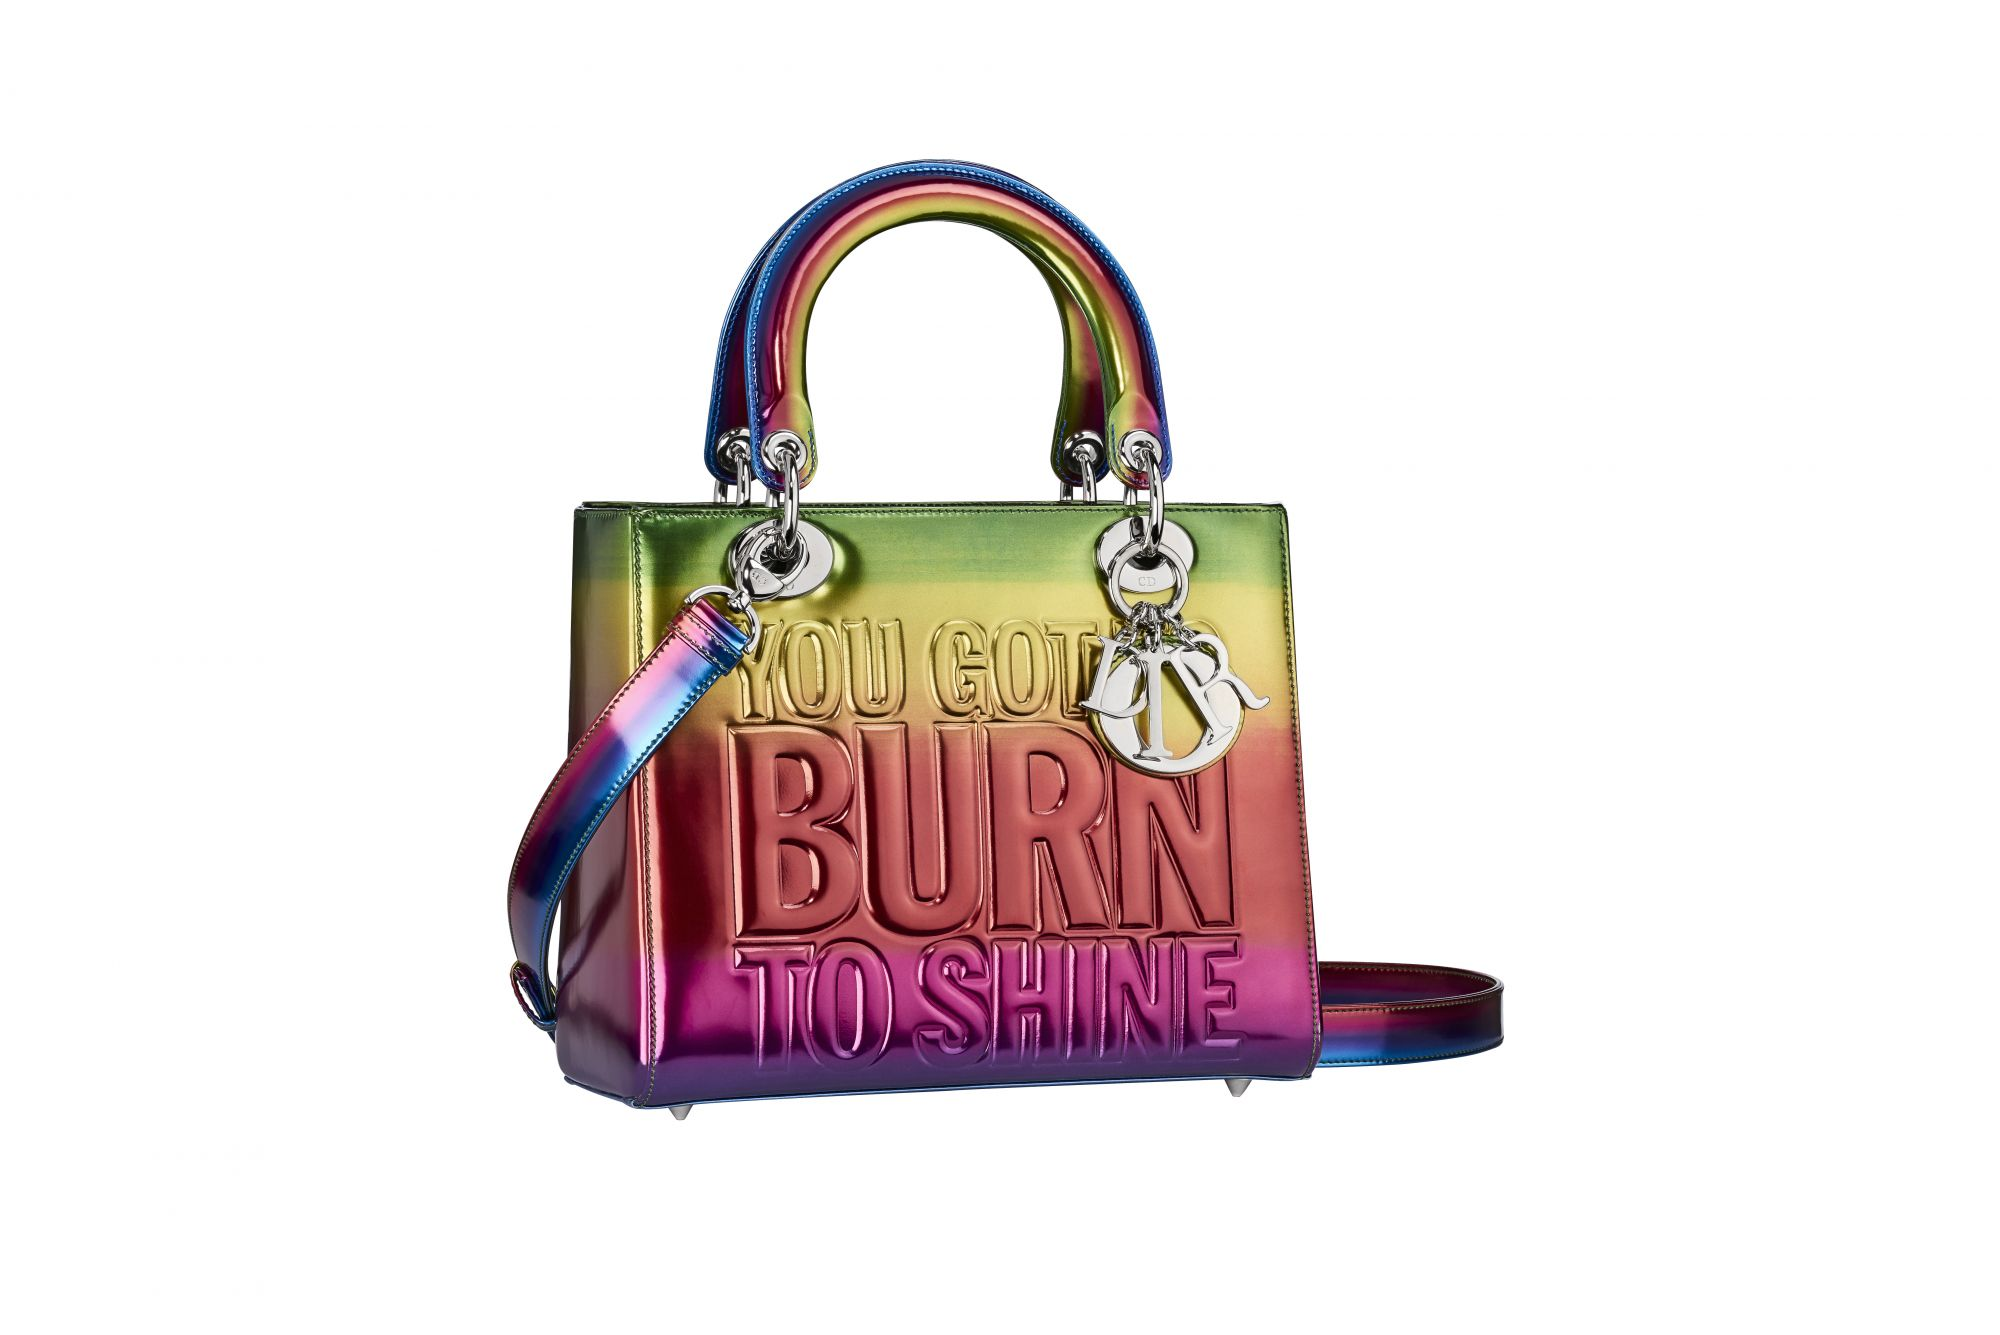 One of the two Lady Dior bags designed by John Giorno - Dior Lady Art   24cfce8608c14